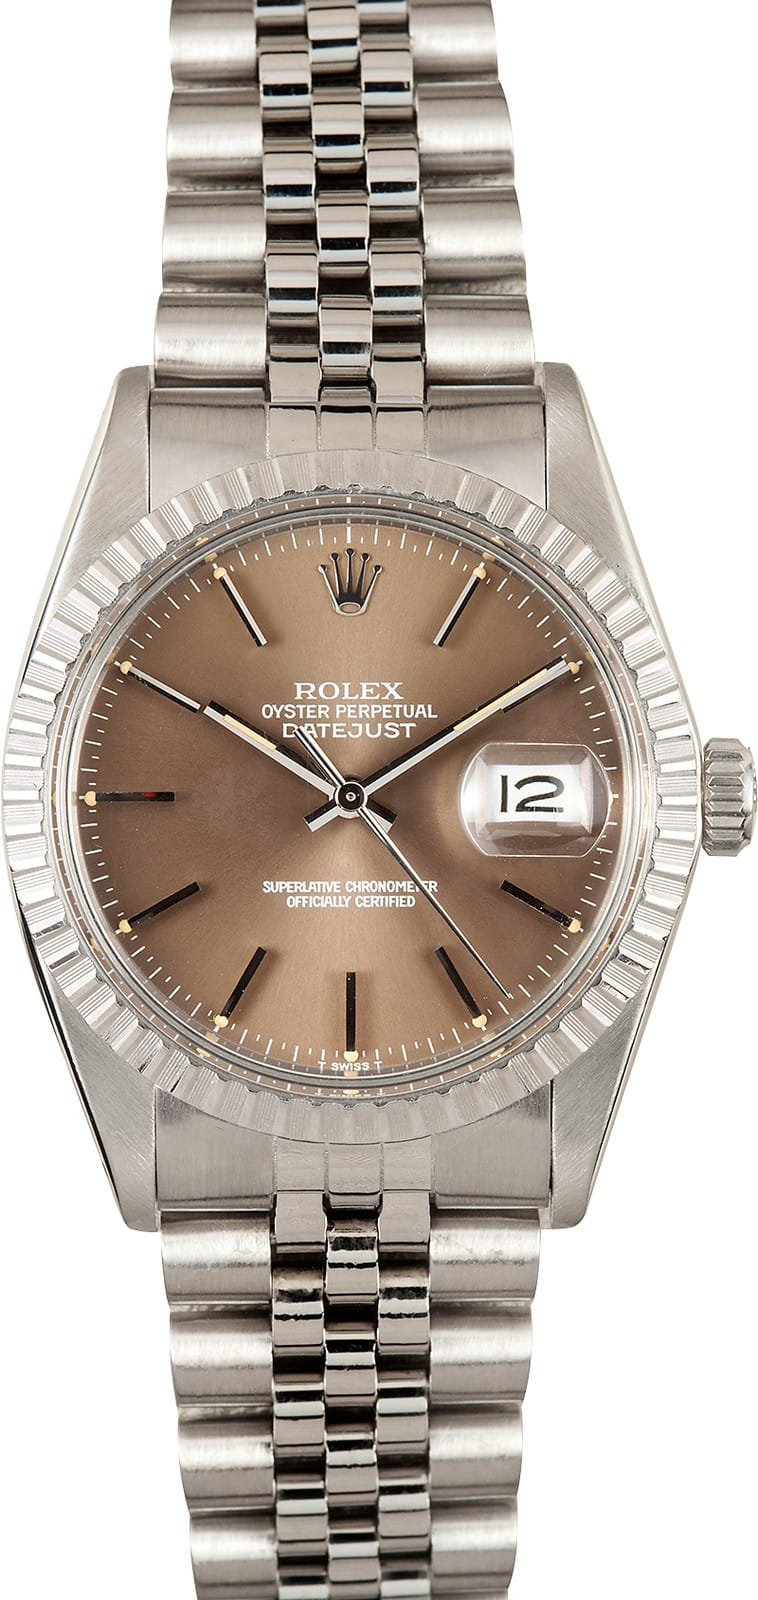 Used Rolex Daytona >> Mens Rolex Datejust 16030 Bronze Dial - Buy Rolex at Bob's Watches